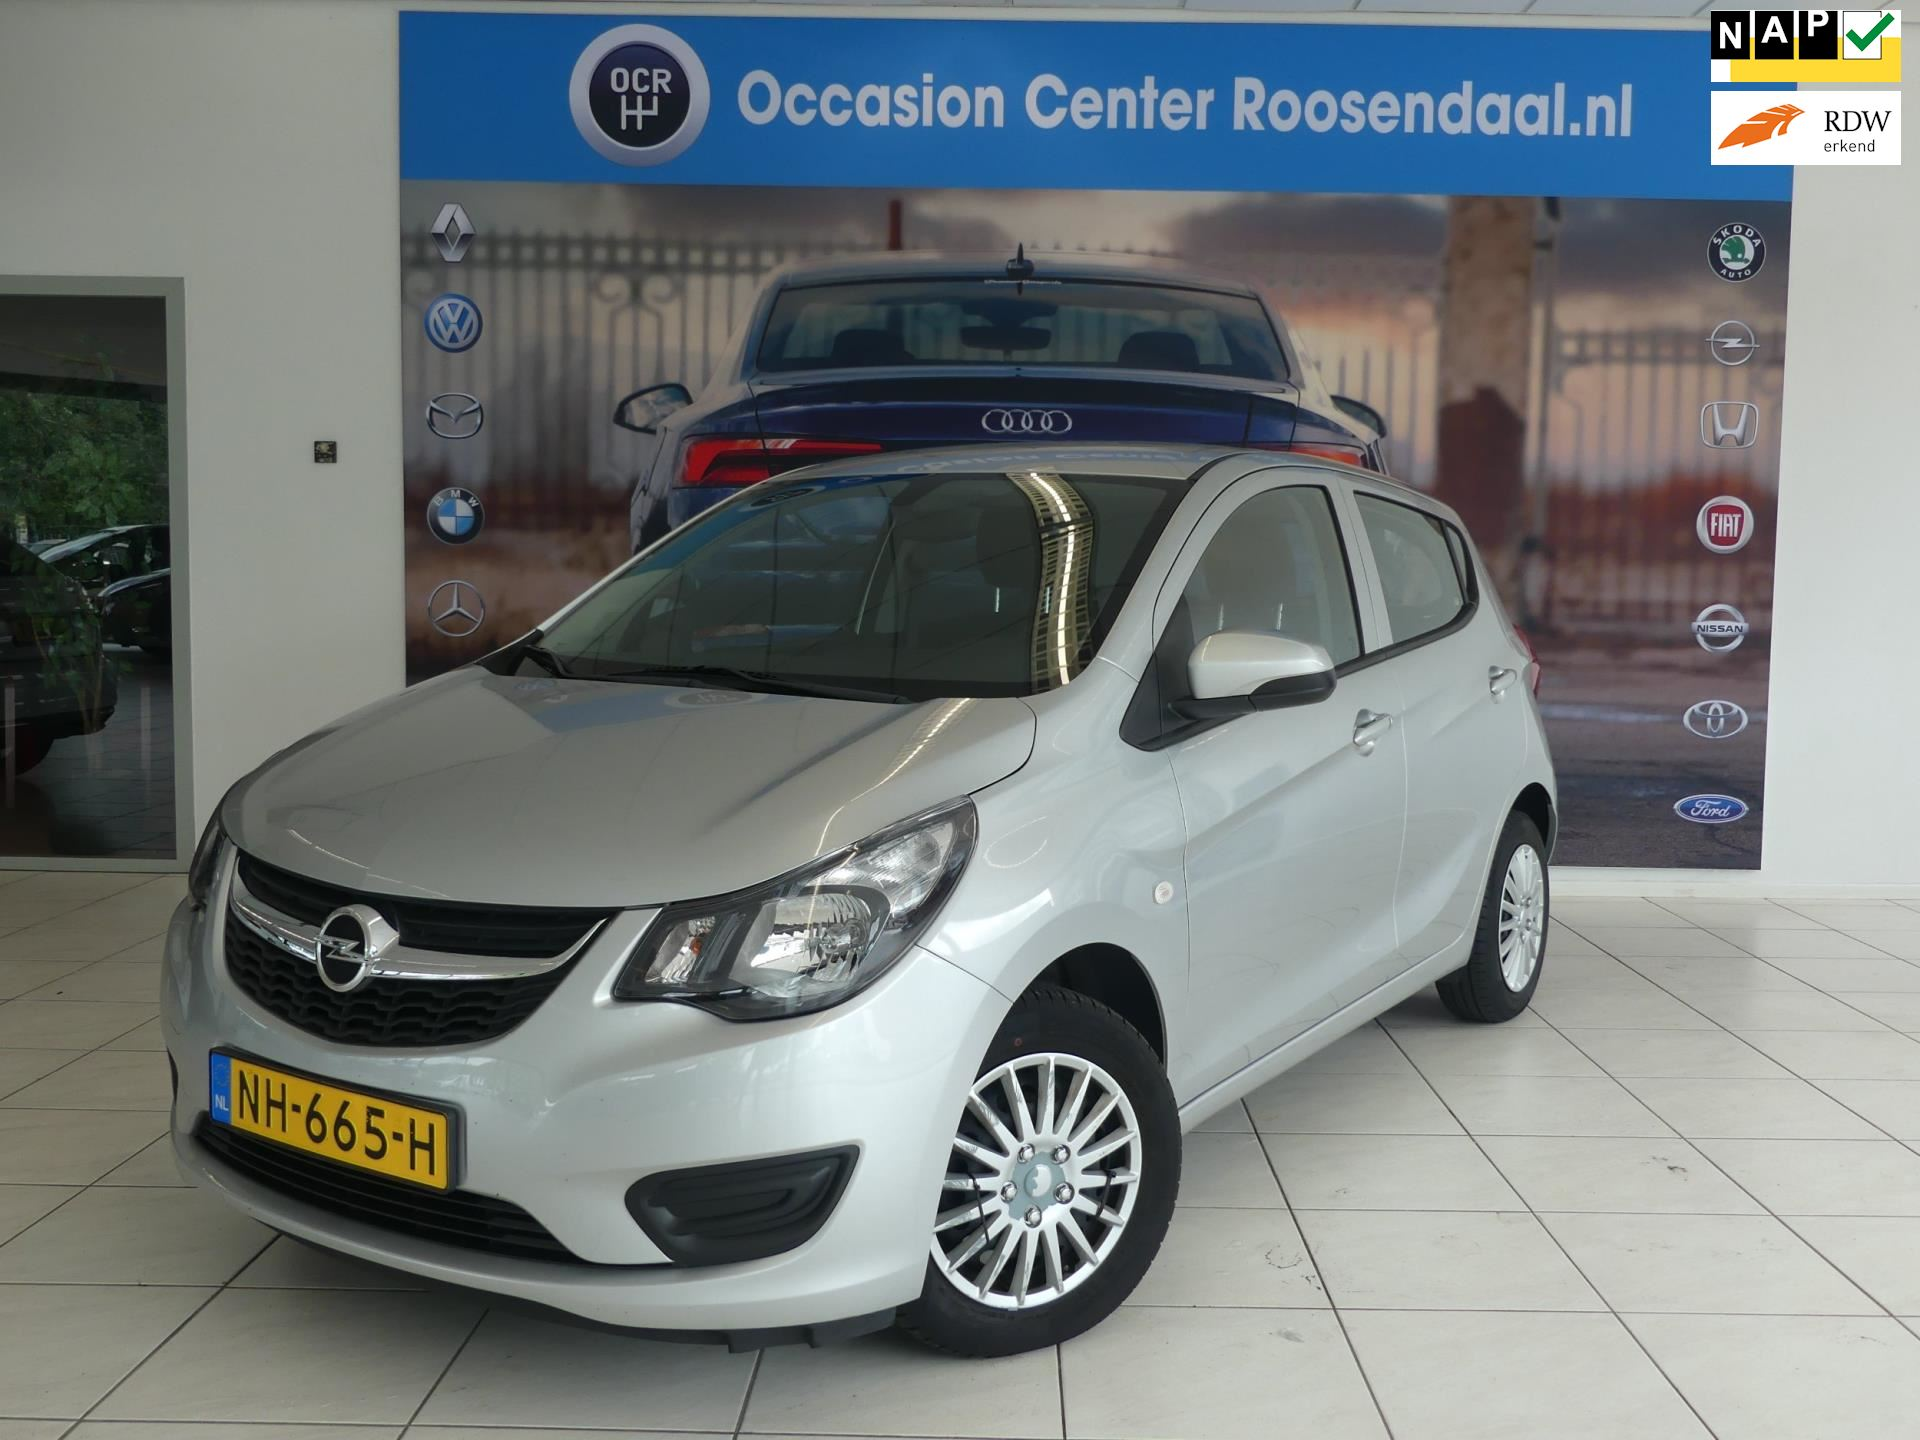 Opel KARL occasion - Occasion Center Roosendaal